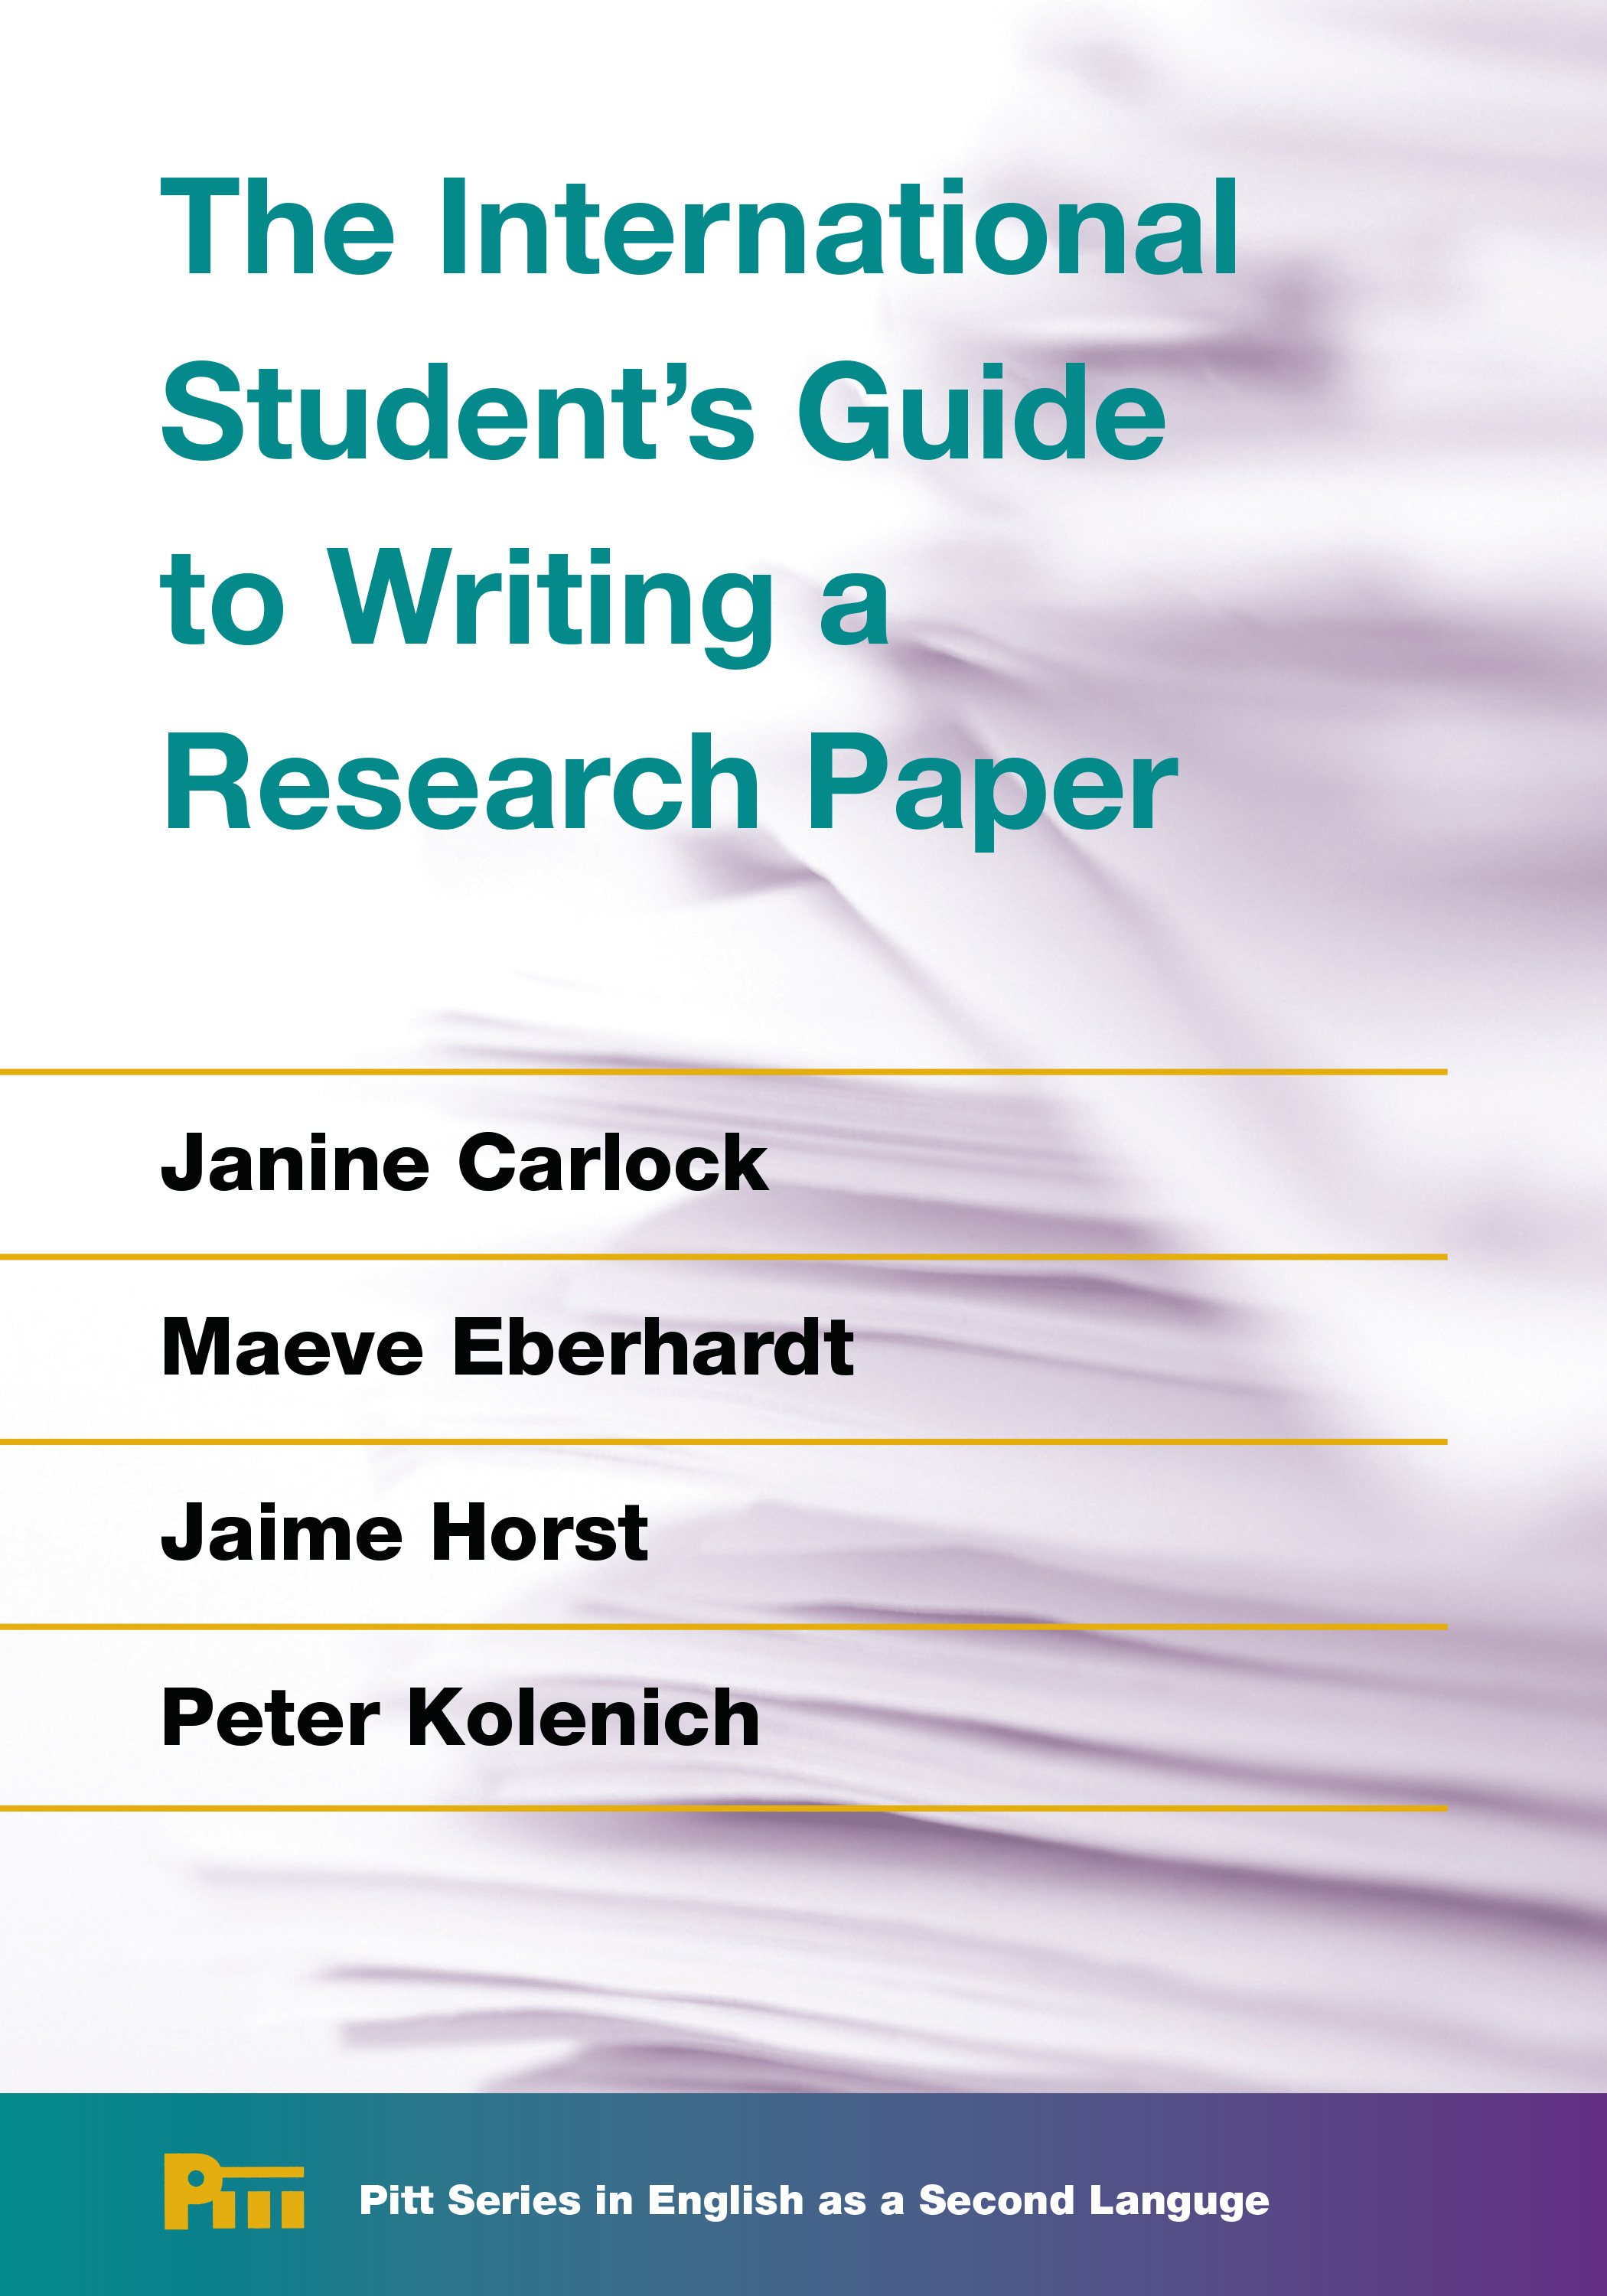 guide writing academic research paper A research paper is a form of academic writing with concise guidelines and examples that involves collecting and presenting evidence to support a position.